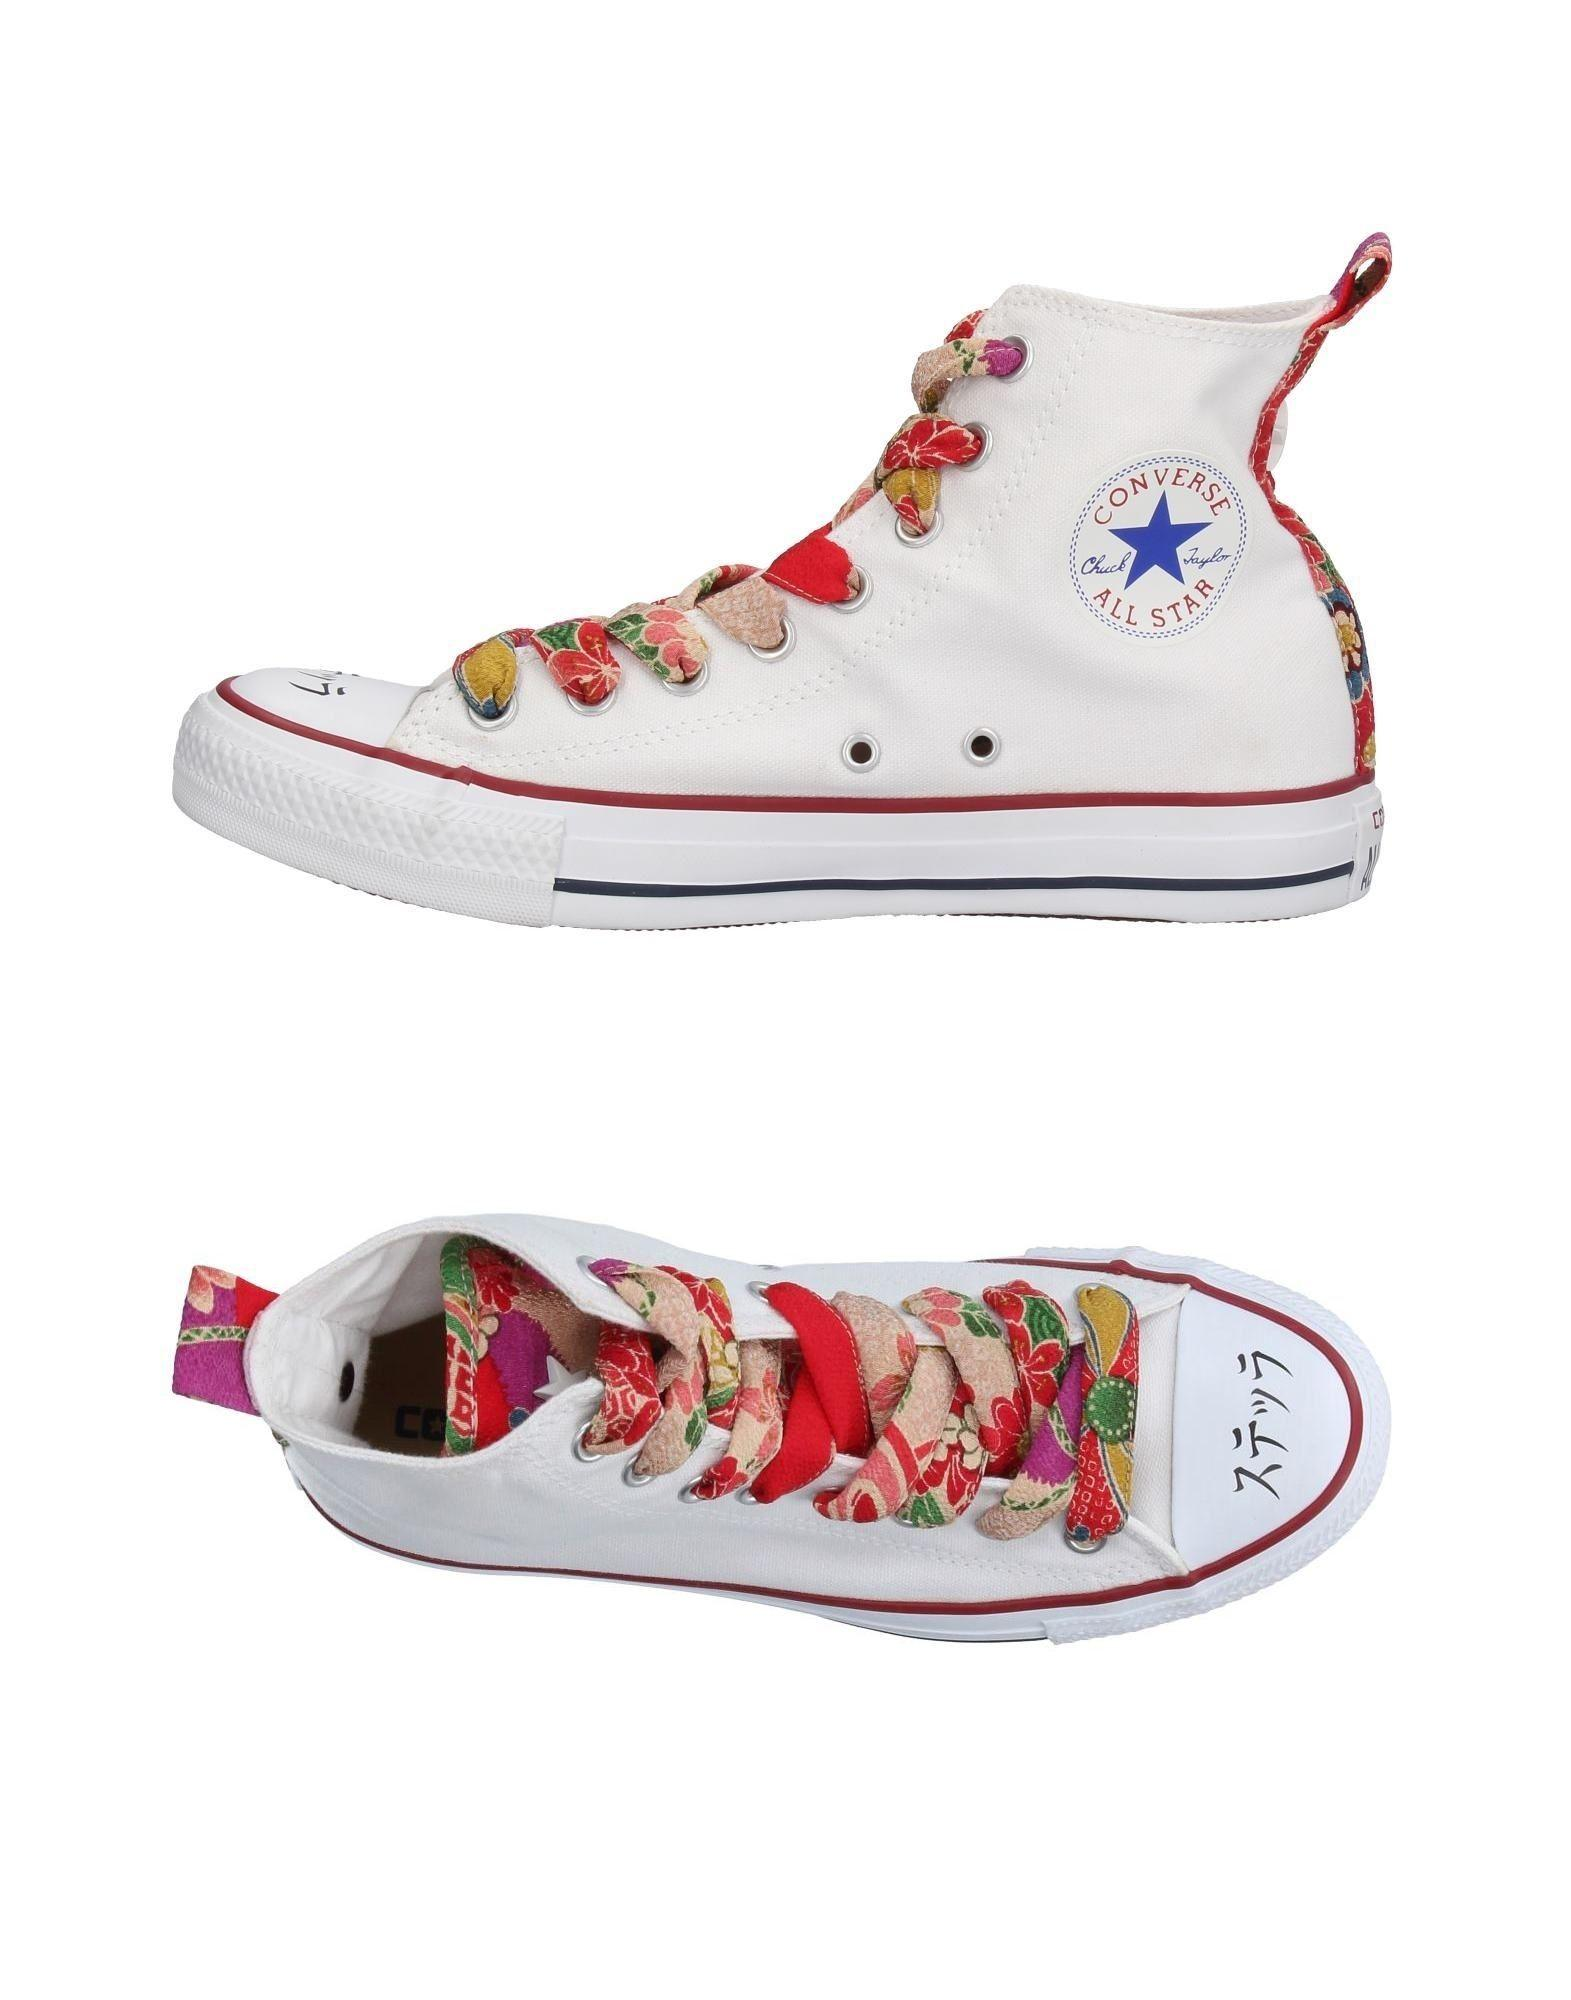 Lyst - Converse High-tops & Sneakers in White